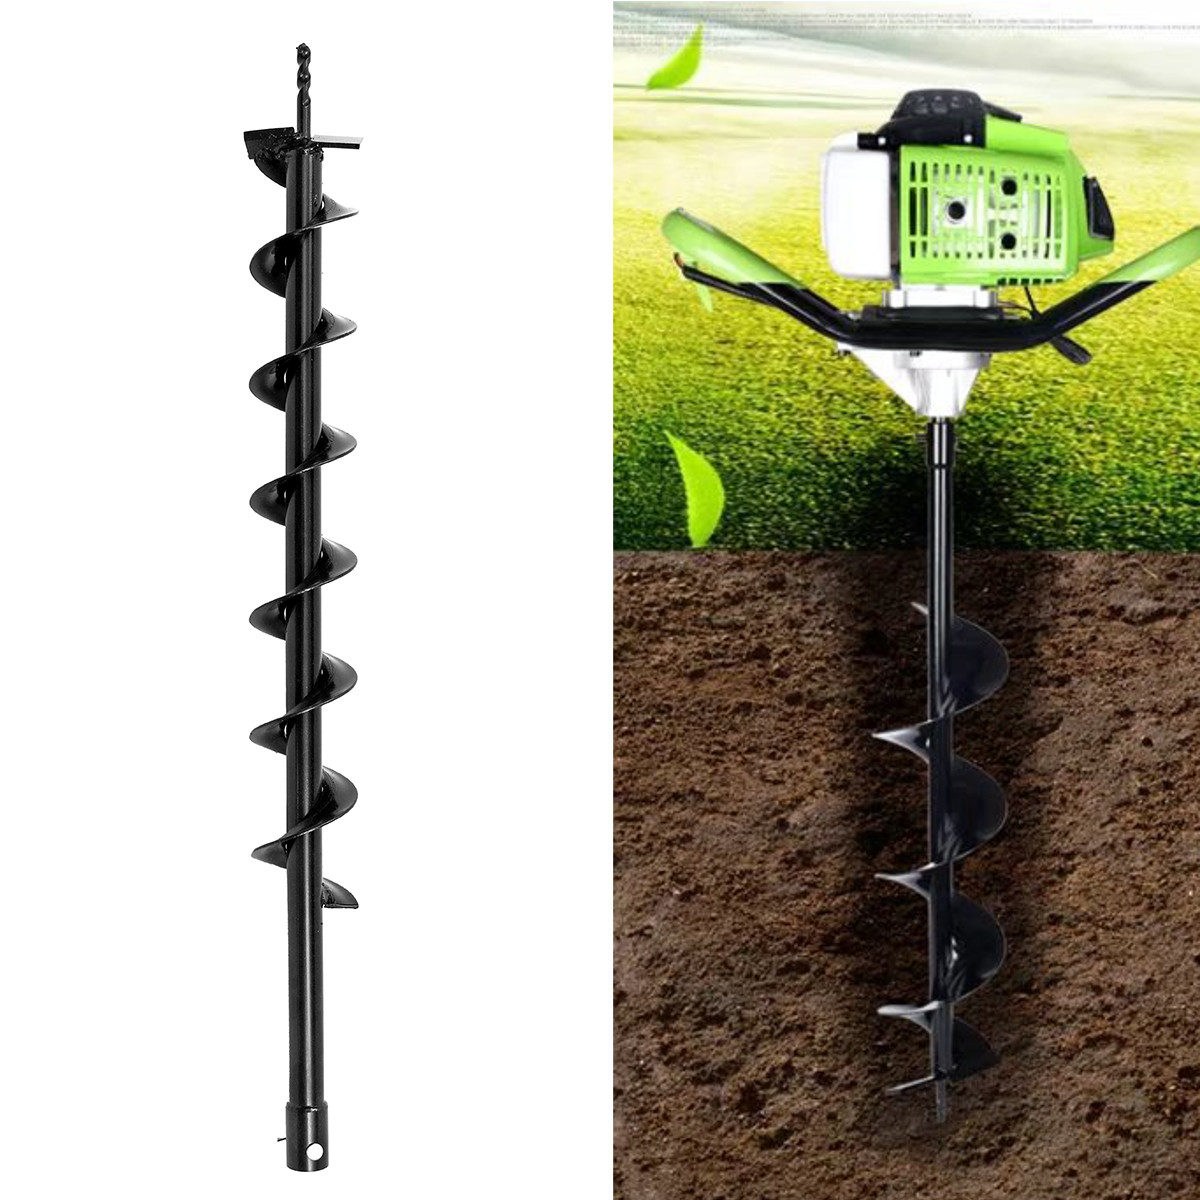 Steel Earth Auger Drill Bit Fence Borer Garden Petrol Post Hole Digger Tool Ground Drill Machine Power Tools Accessories 80mmSteel Earth Auger Drill Bit Fence Borer Garden Petrol Post Hole Digger Tool Ground Drill Machine Power Tools Accessories 80mm